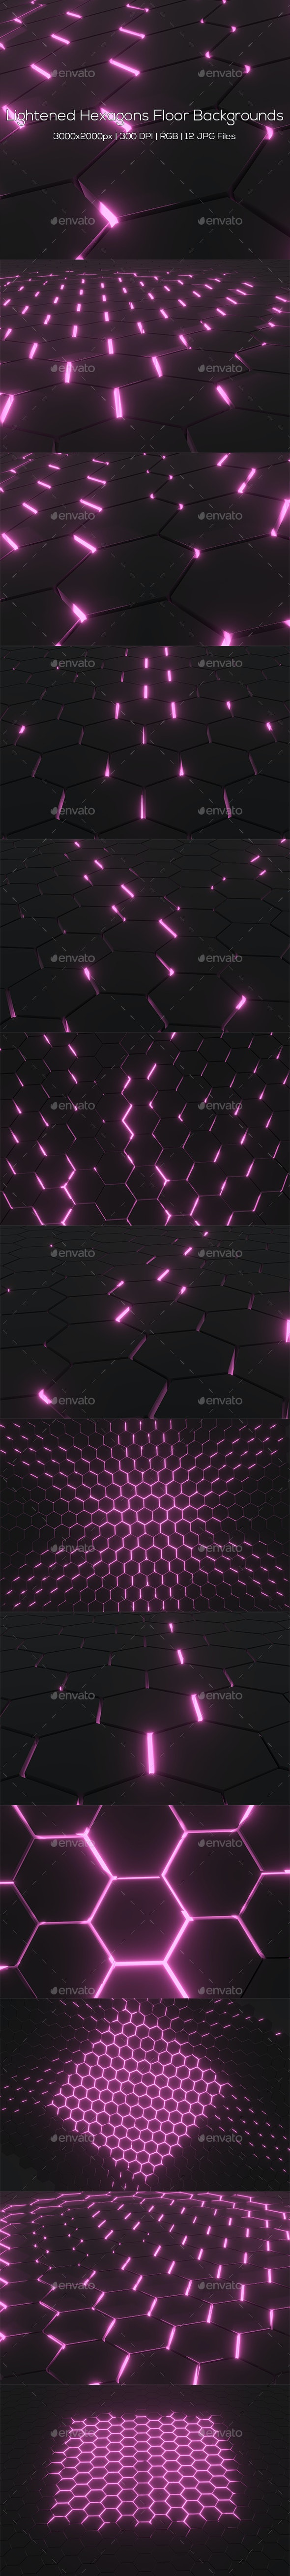 Lightened Hexagons Floor Backgrounds - Abstract Backgrounds